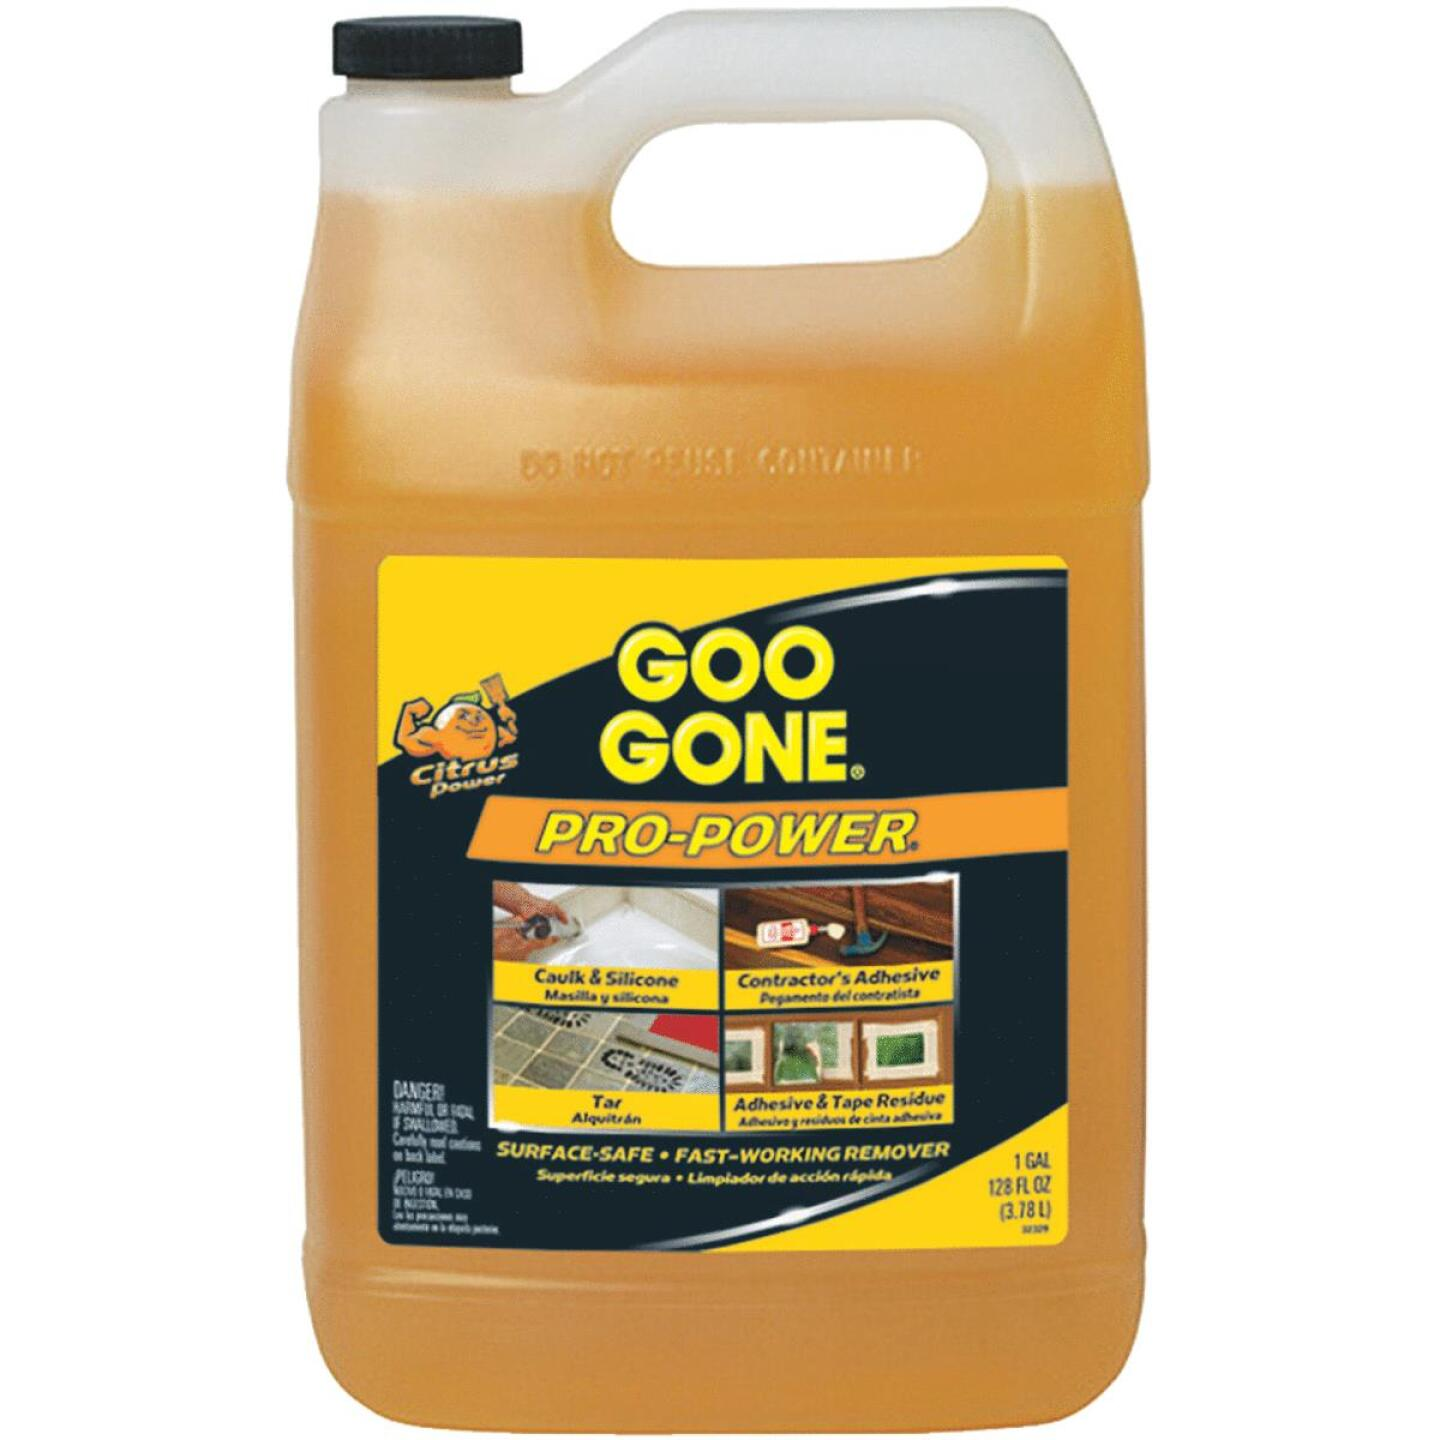 Goo Gone 1 Gal. Pro-Power Adhesive Remover Image 30